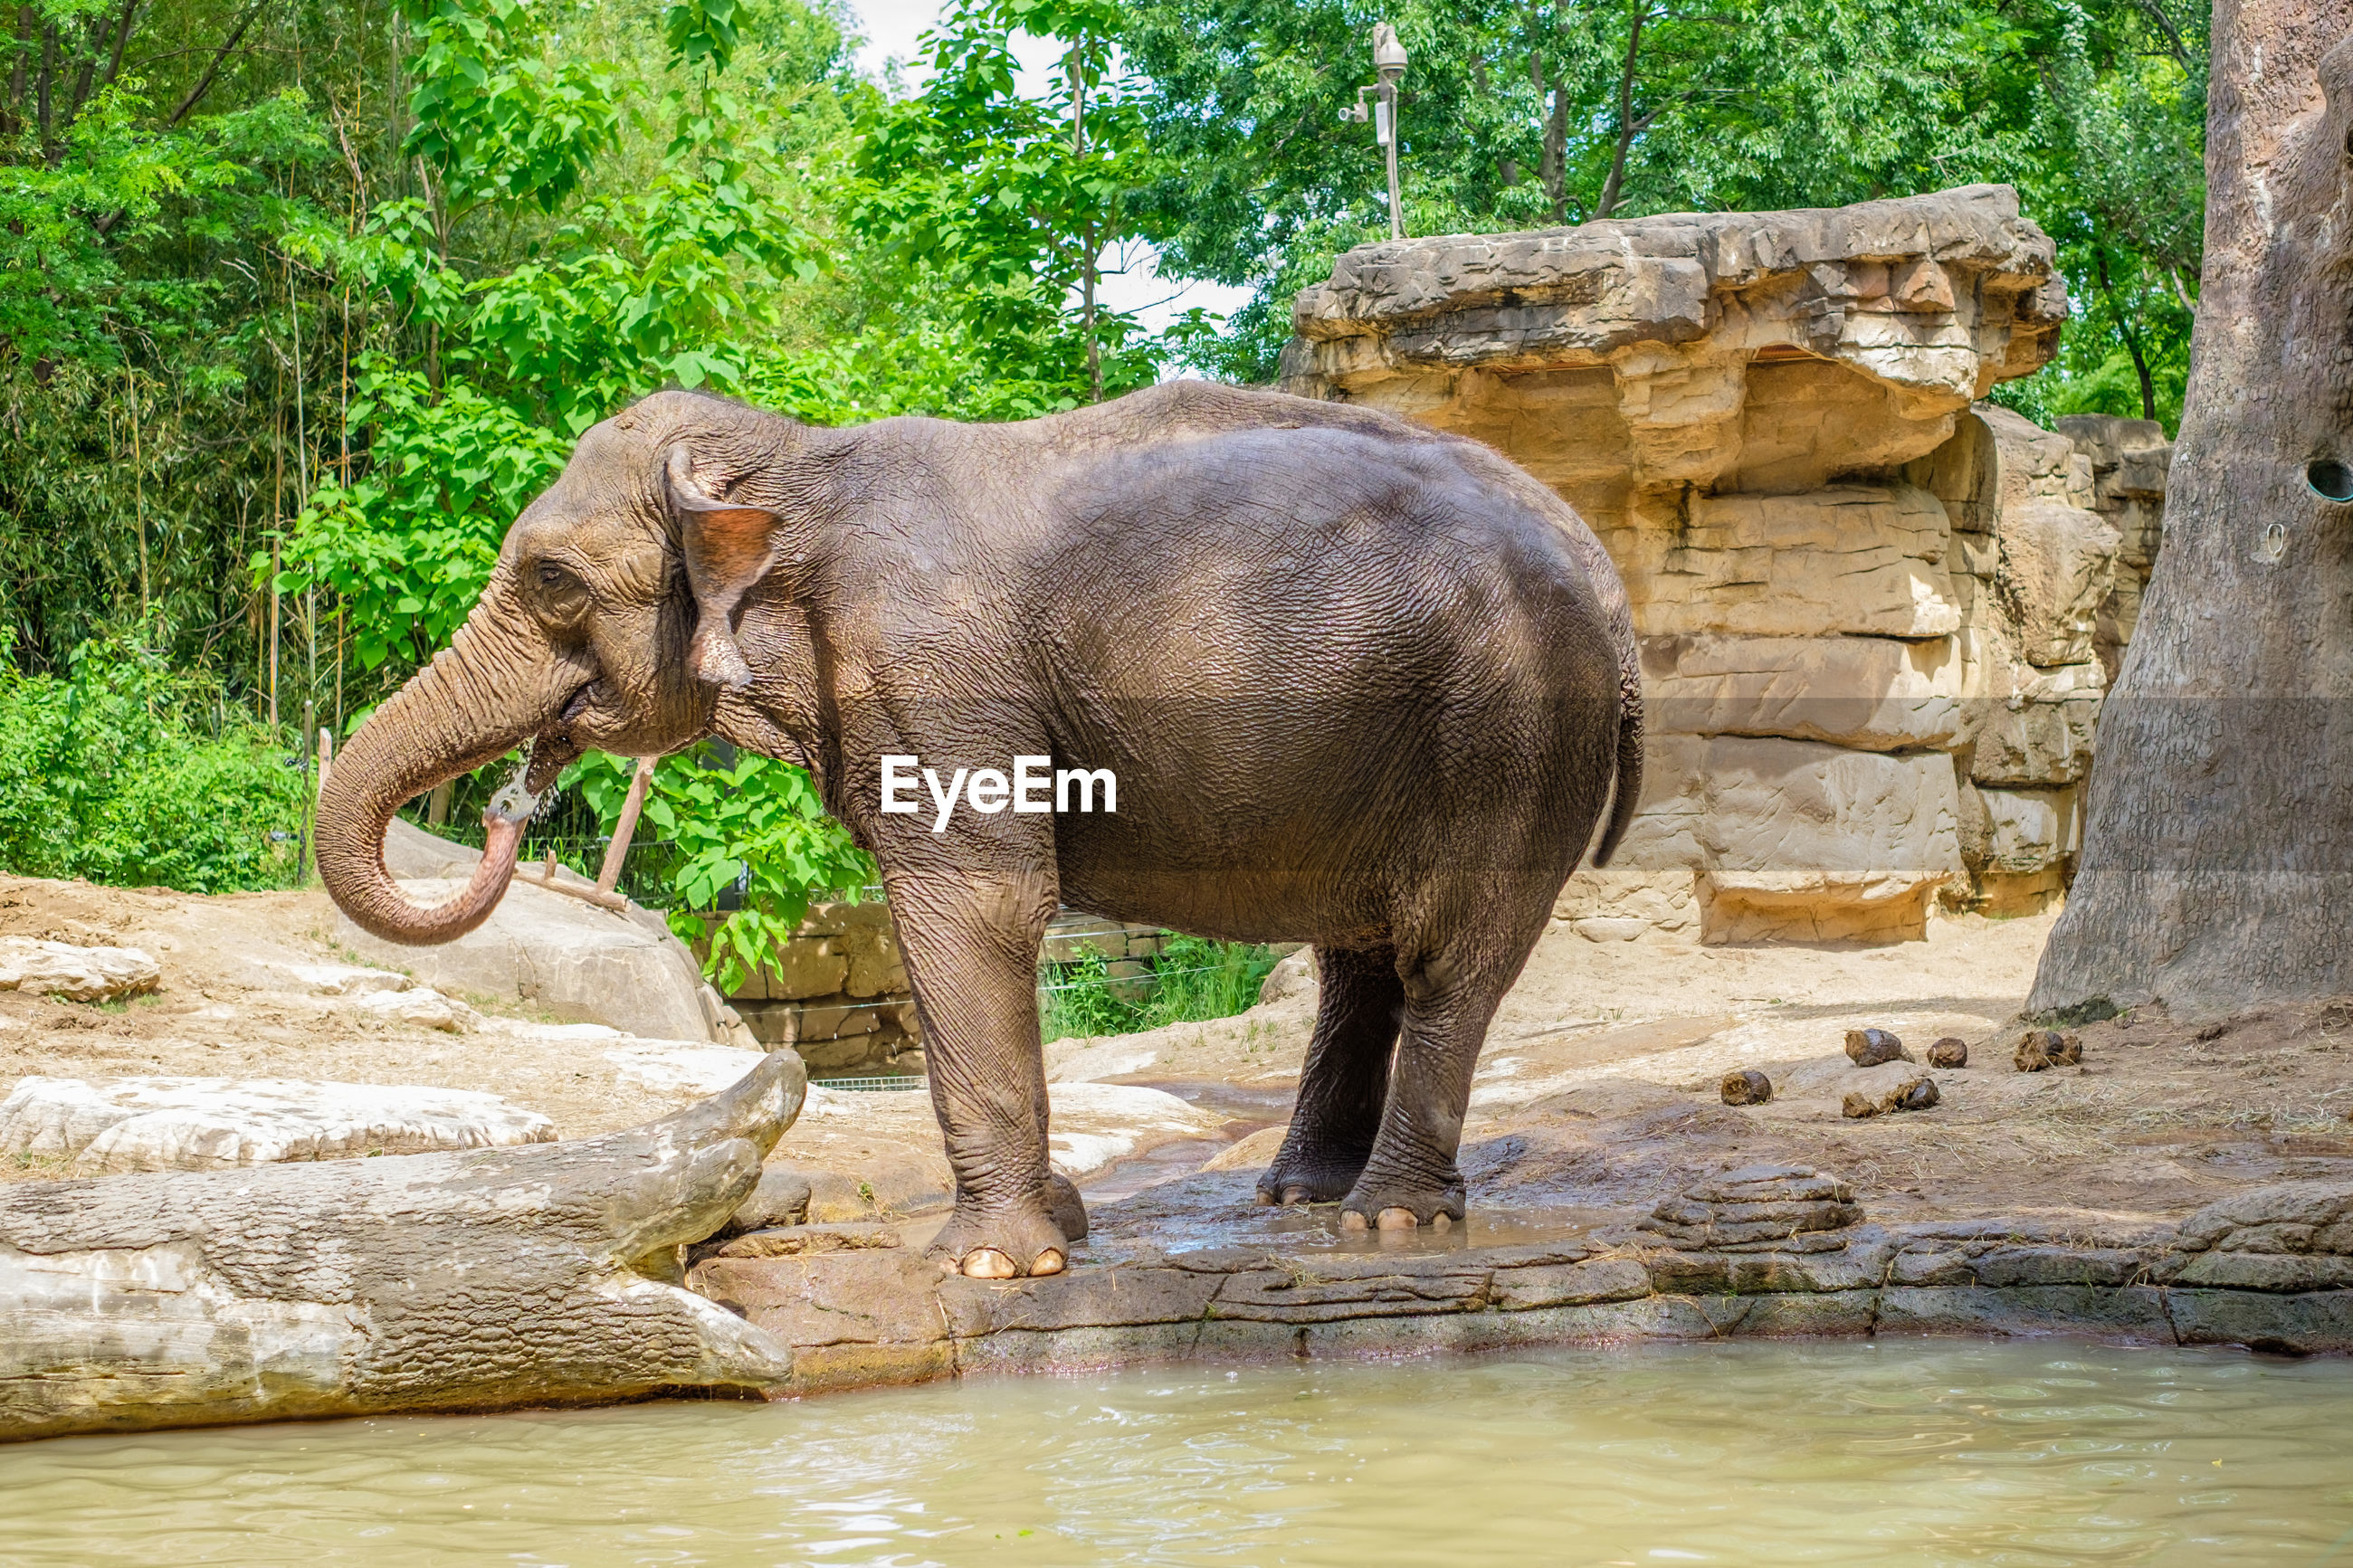 Elephant standing by pond against trees